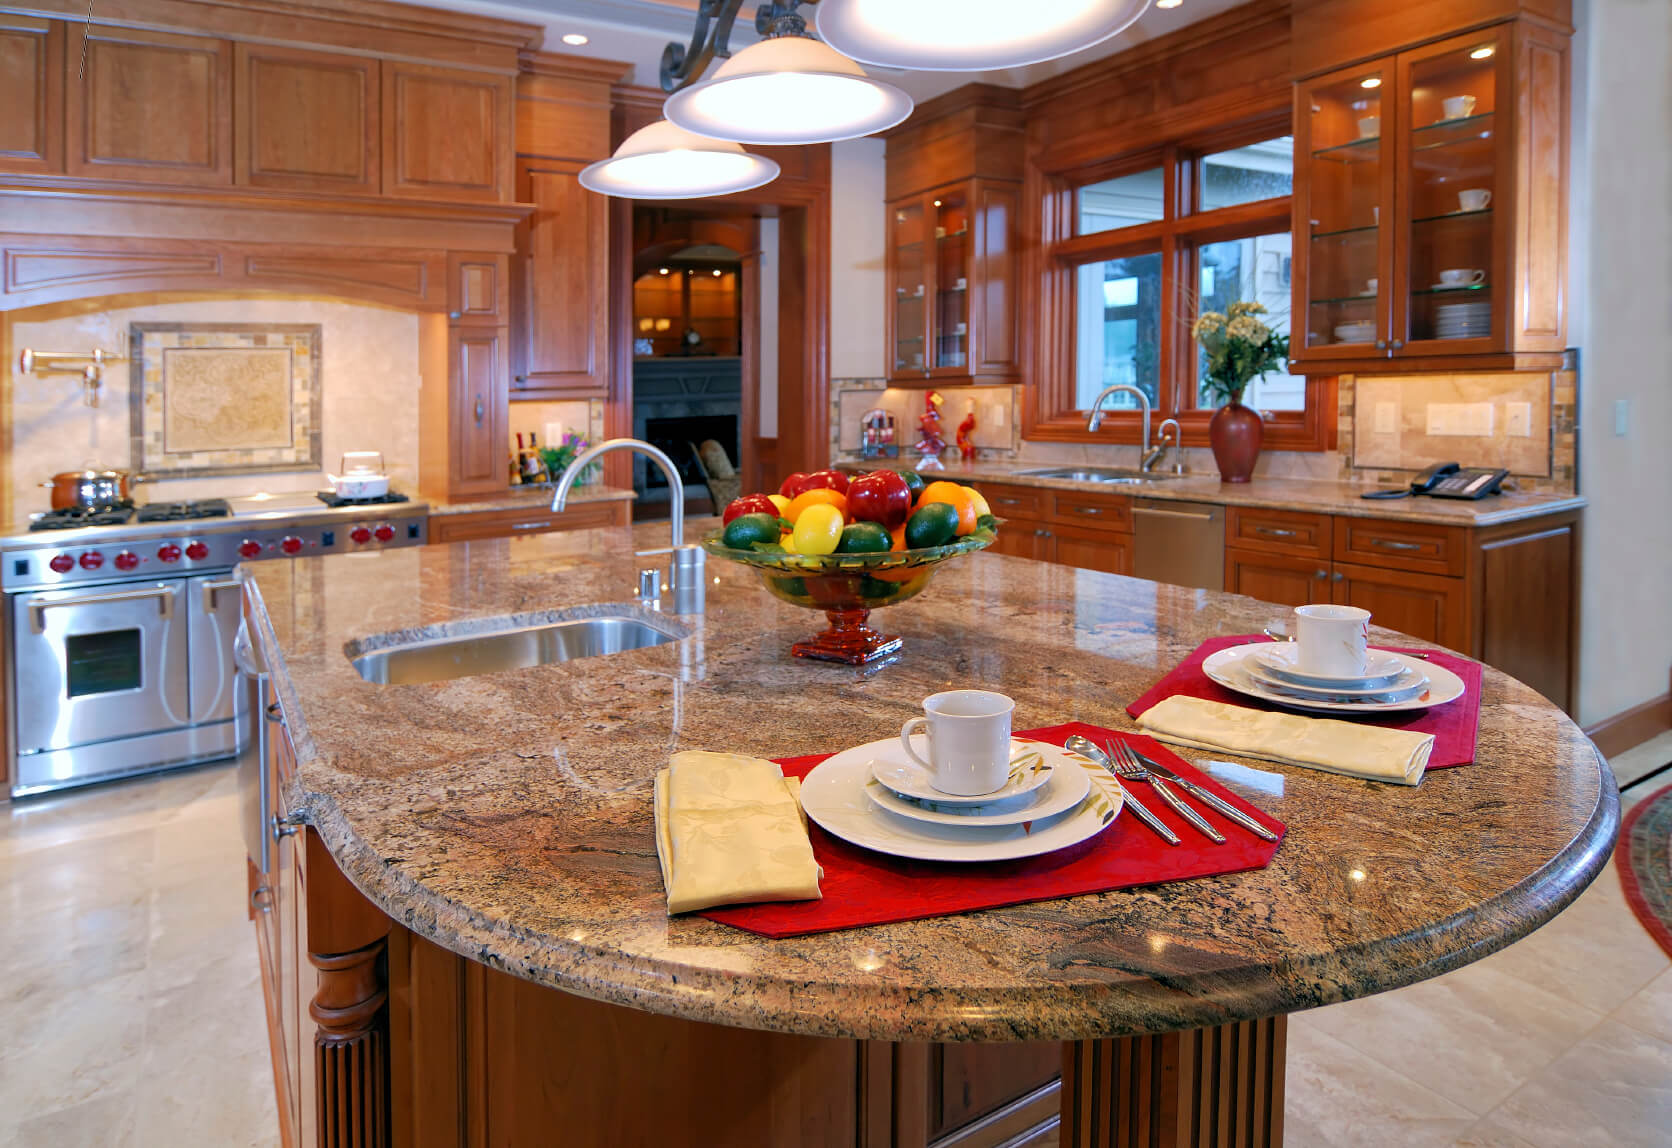 84 Custom Luxury Kitchen Island Ideas amp Designs Pictures : iStock000003069714Medium from www.homestratosphere.com size 1672 x 1148 jpeg 275kB